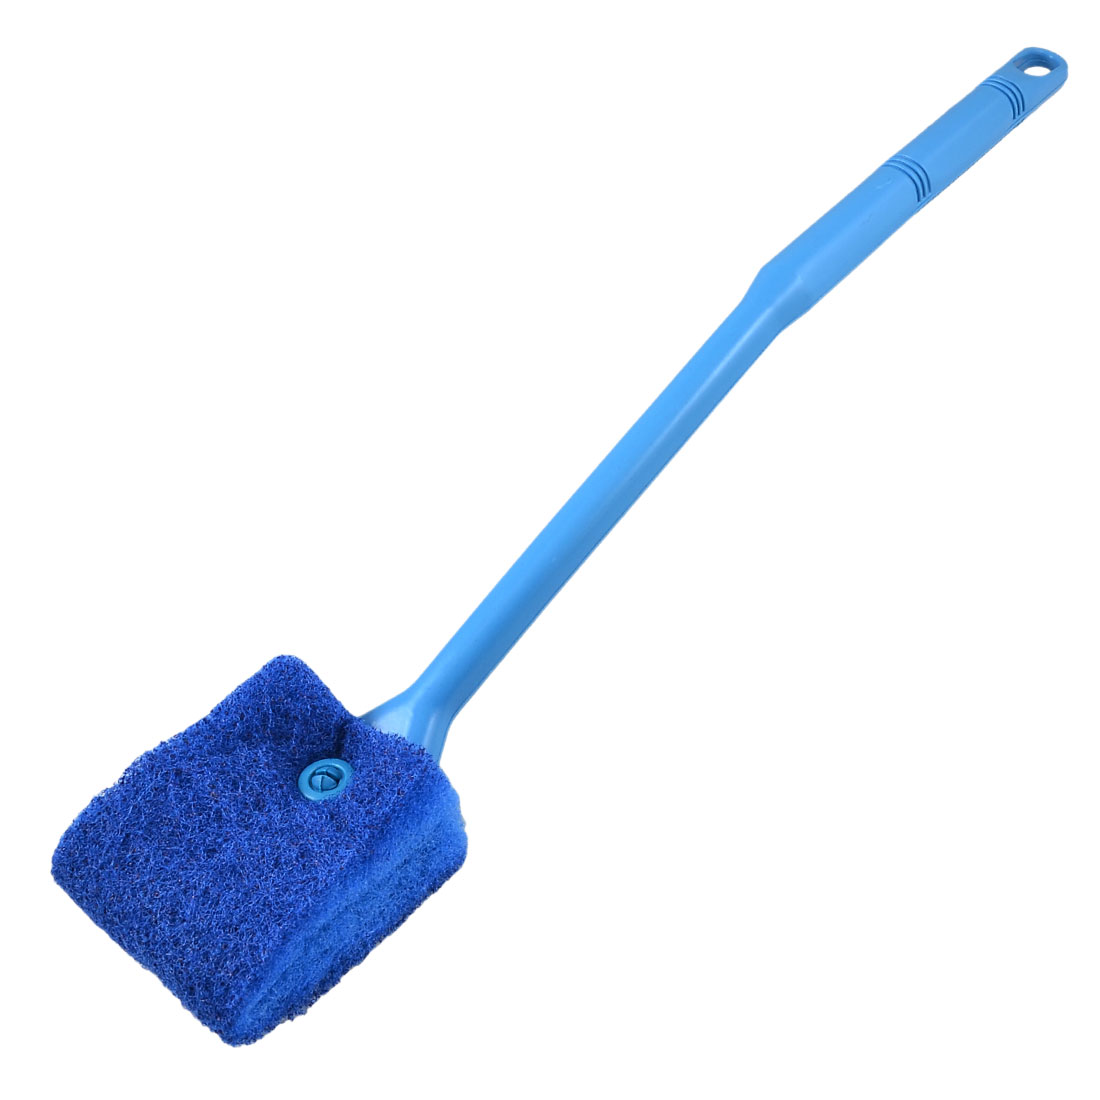 Aquarium Fish Tank Sponge Double Sided Cleaning Brush Cleaner Scrubber Yale Blue